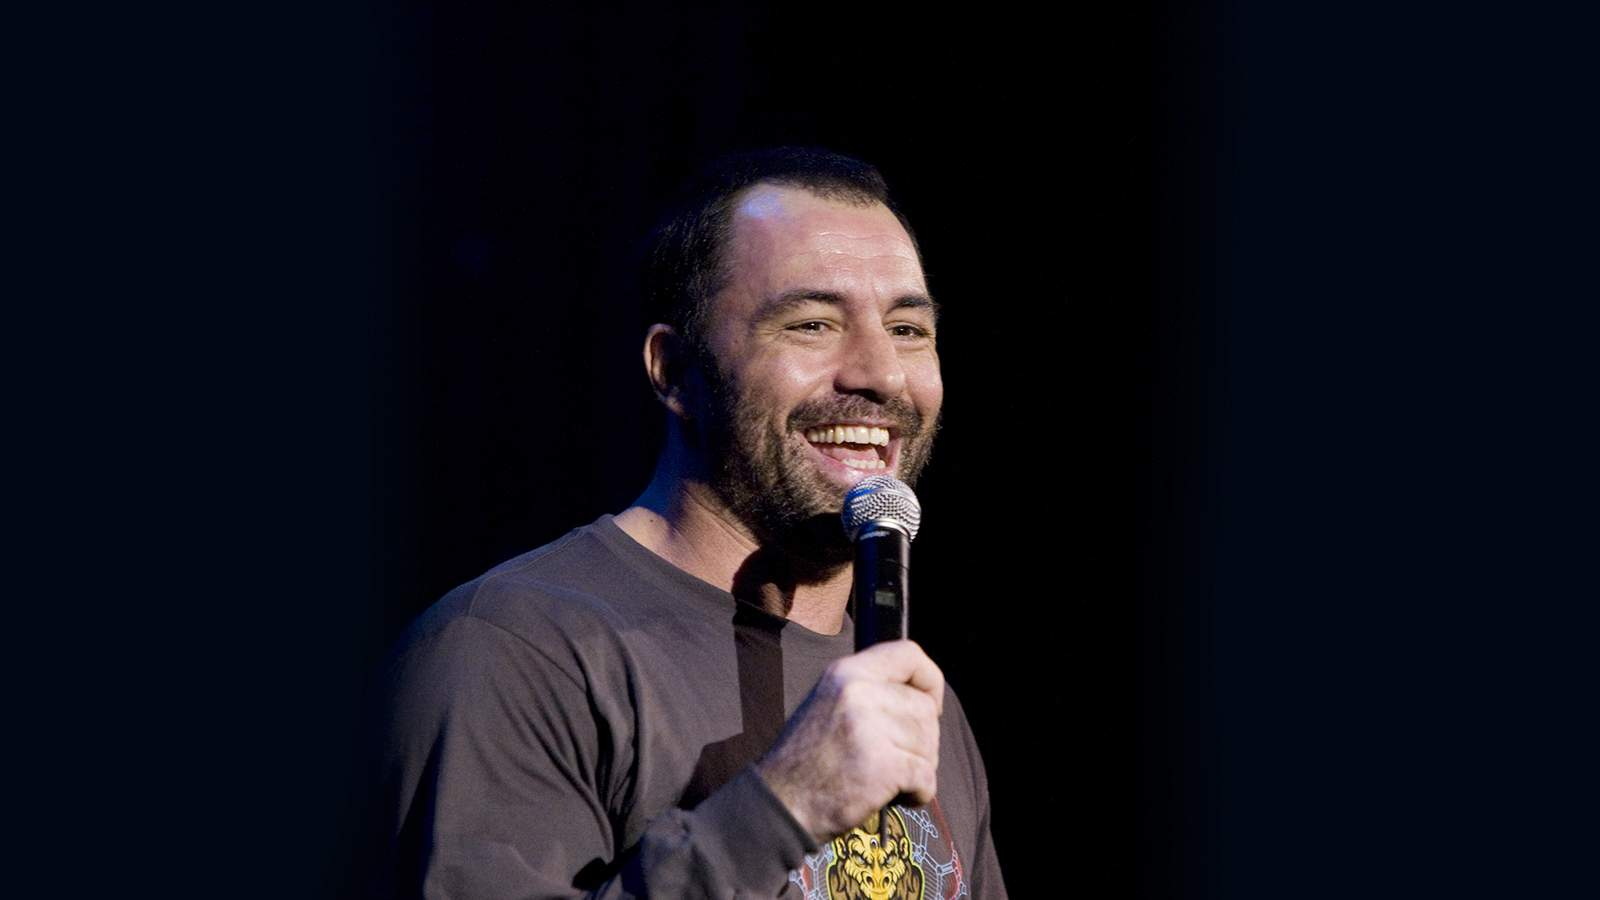 Joe Rogan (Rescheduled from 10/10/2020)